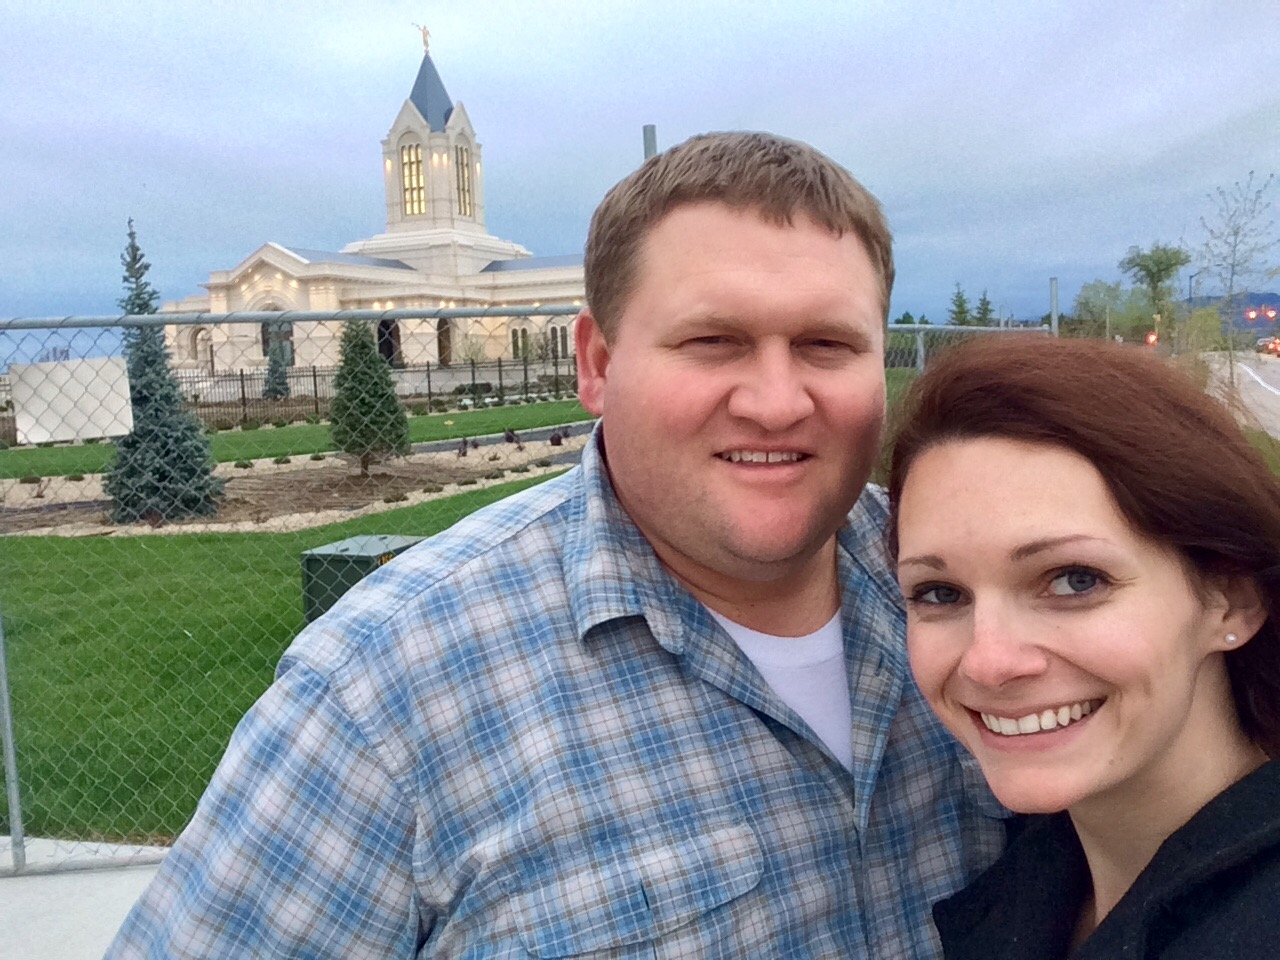 We stopped for a peak at the soon-to-be-dedicated Fort Collins Temple on the way home. It's beautiful!